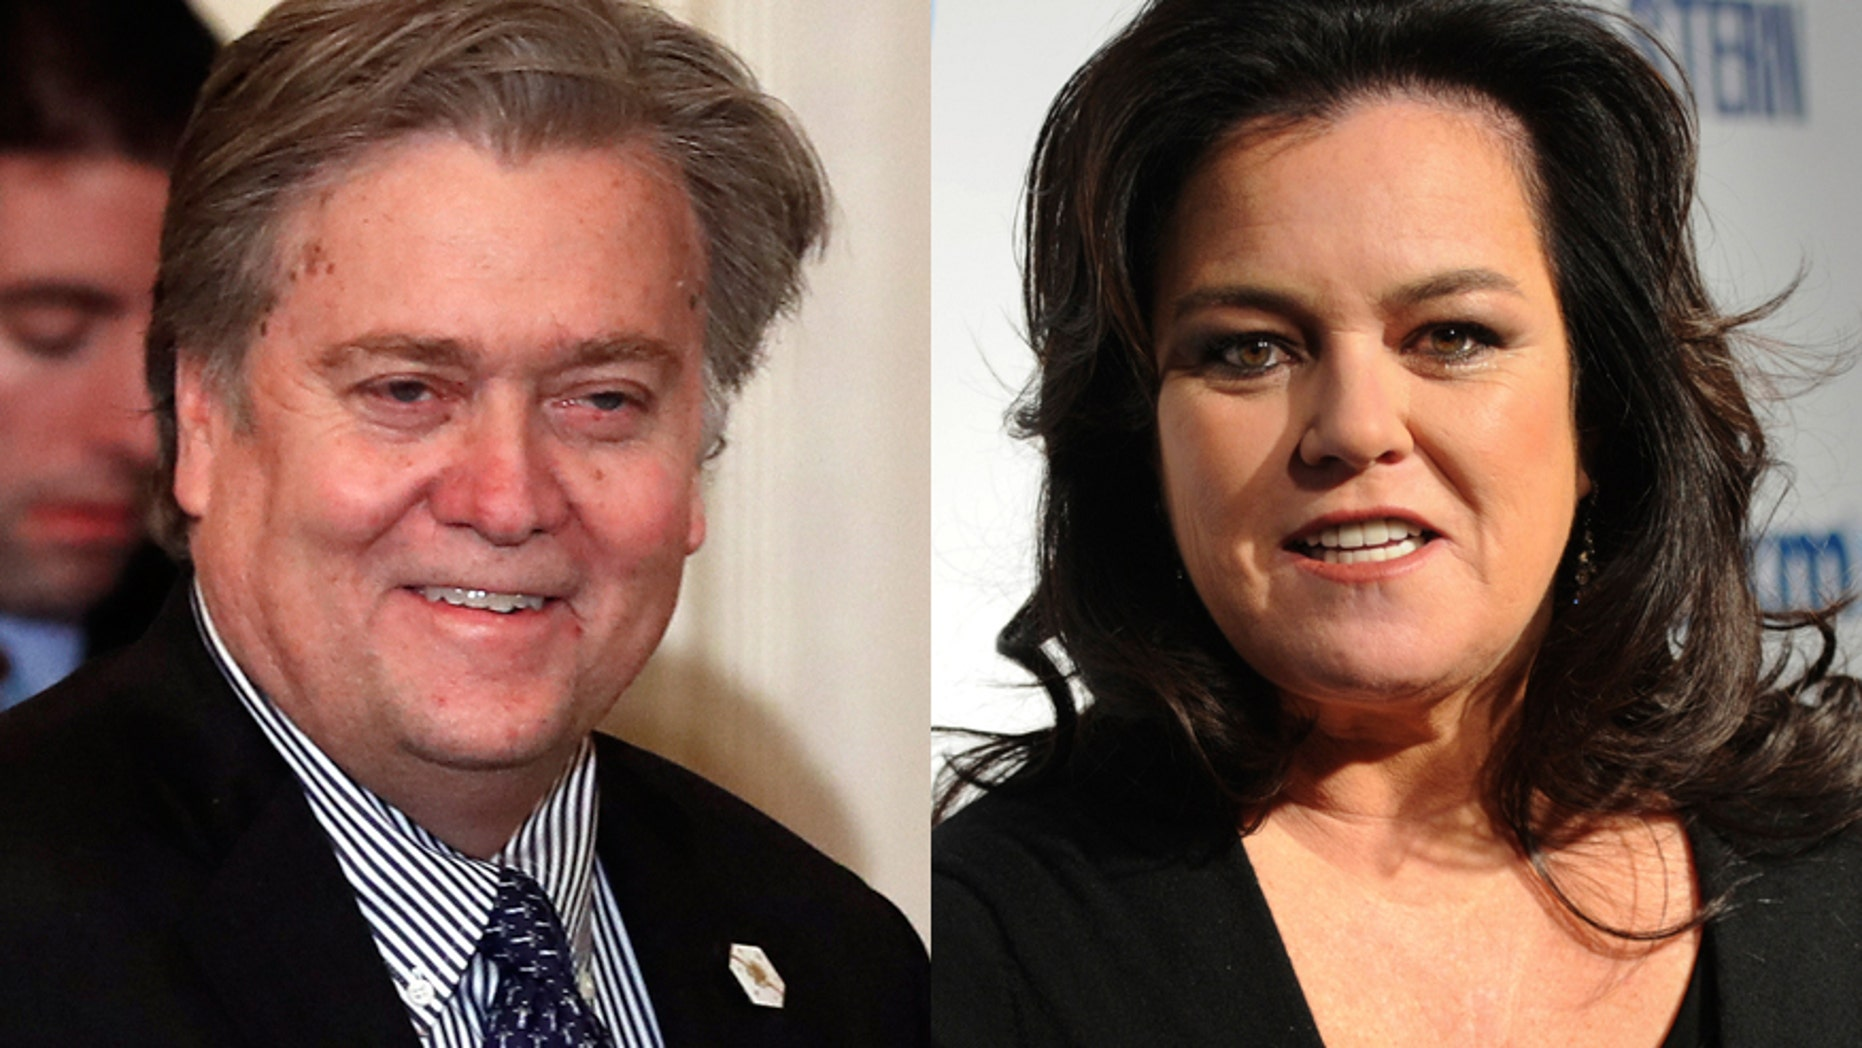 Steve Bannon, chief White House strategist to President Donald Trump, left, and comedian Rosie O'Donnell, right.